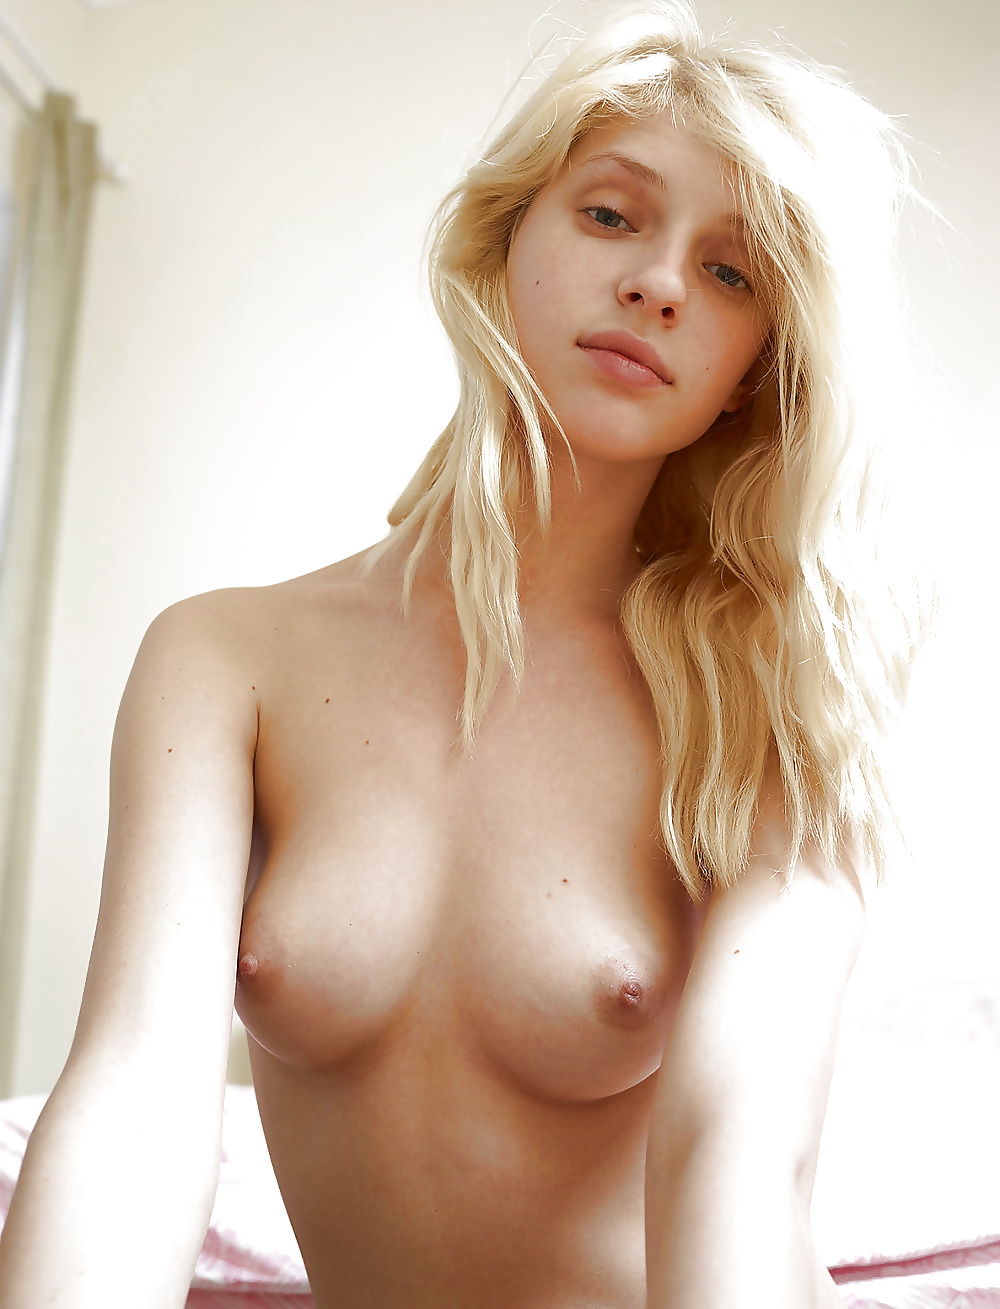 Hot nude blonde haired girl